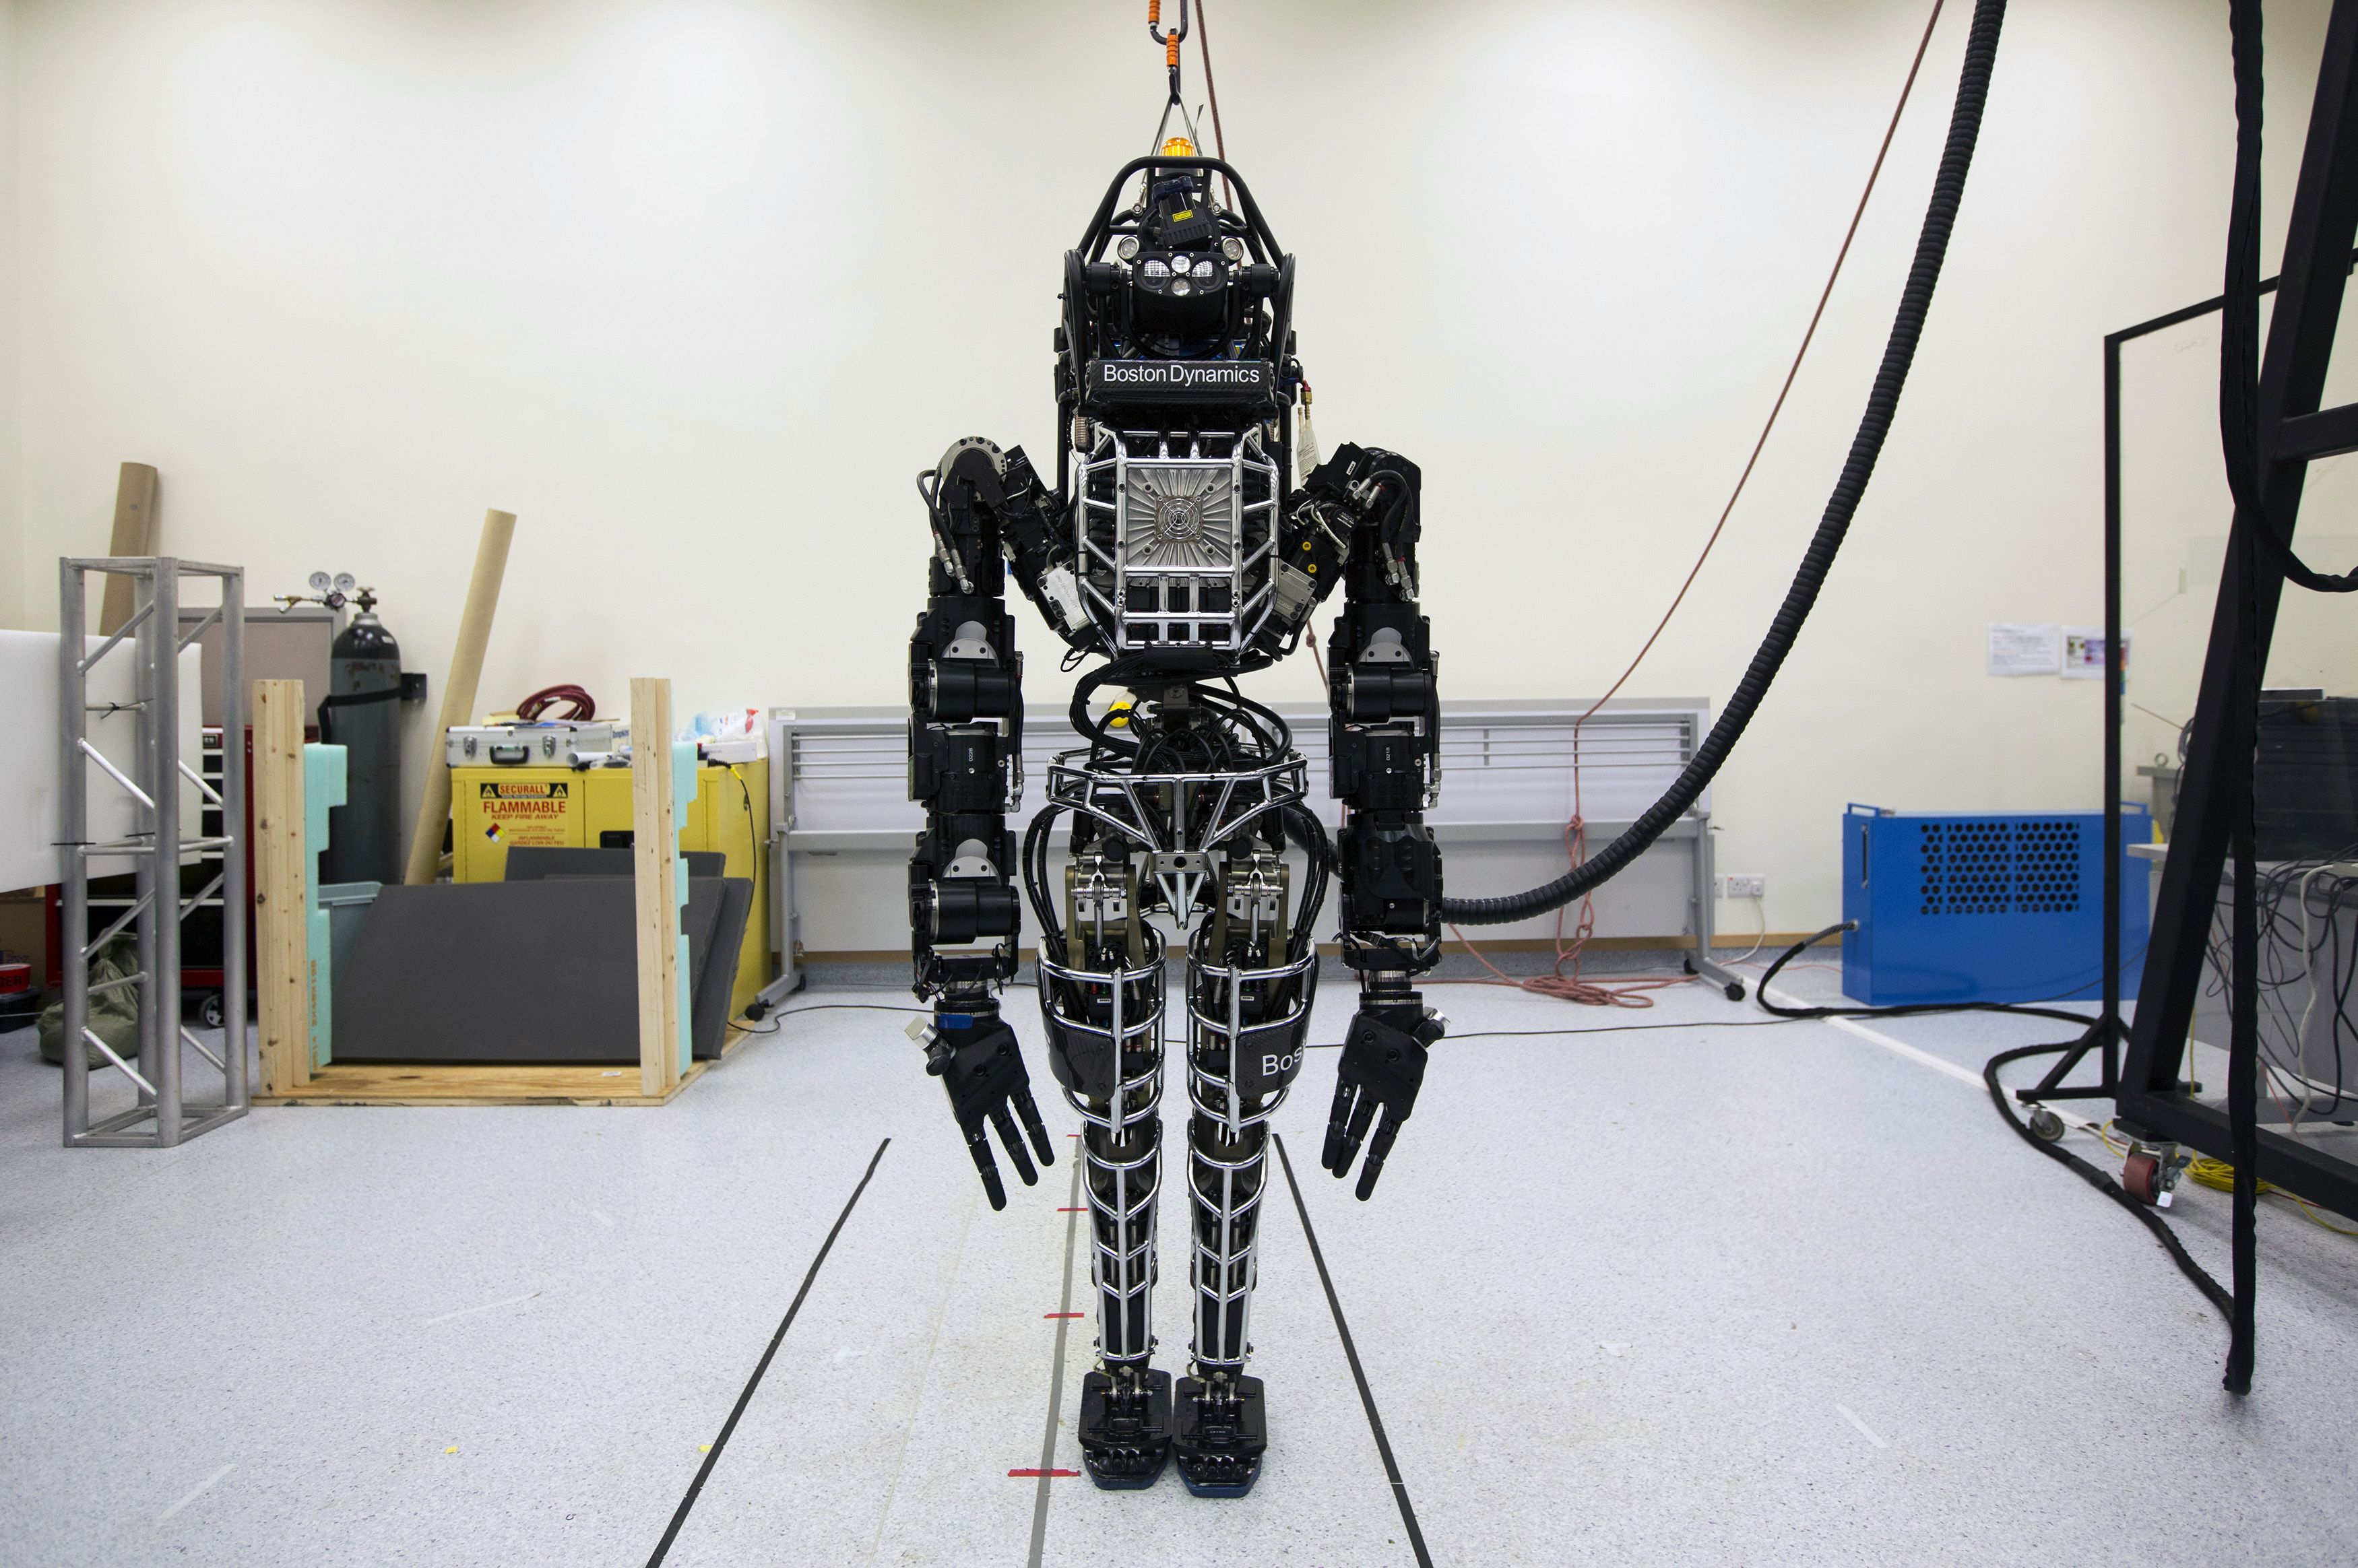 """Bipedal humanoid robot """"Atlas"""", primarily developed by the American robotics company Boston Dynamics, is presented to the media during a news conference at the University of Hong Kong October 17, 2013. The 6-foot (1.83 m) tall, 330-pound (149.7 kg) robot is made of graded aluminium and titanium and costs HK$ 15 million ($1.93 million). It is capable of a variety of natural movements, including dynamic walking, calisthenics and user programmed behaviours, according to the University of Hong Kong's press release. REUTERS/Tyrone Siu (CHINA - Tags: SCIENCE TECHNOLOGY) - RTX14EEC"""